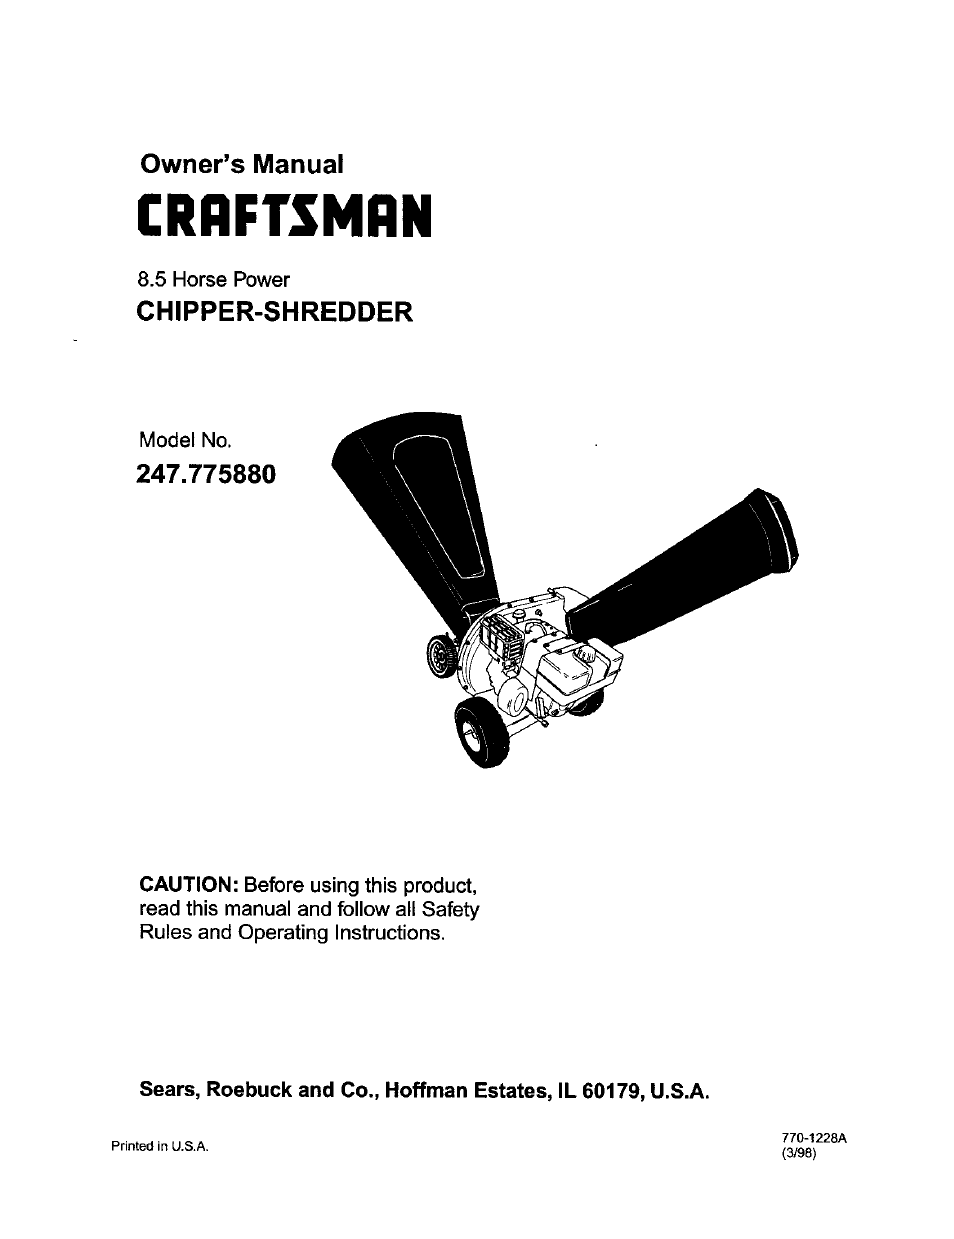 craftsman 247 775880 user manual 26 pages rh manualsdir com Sony A6000 User Manual Sony User Manual Guide